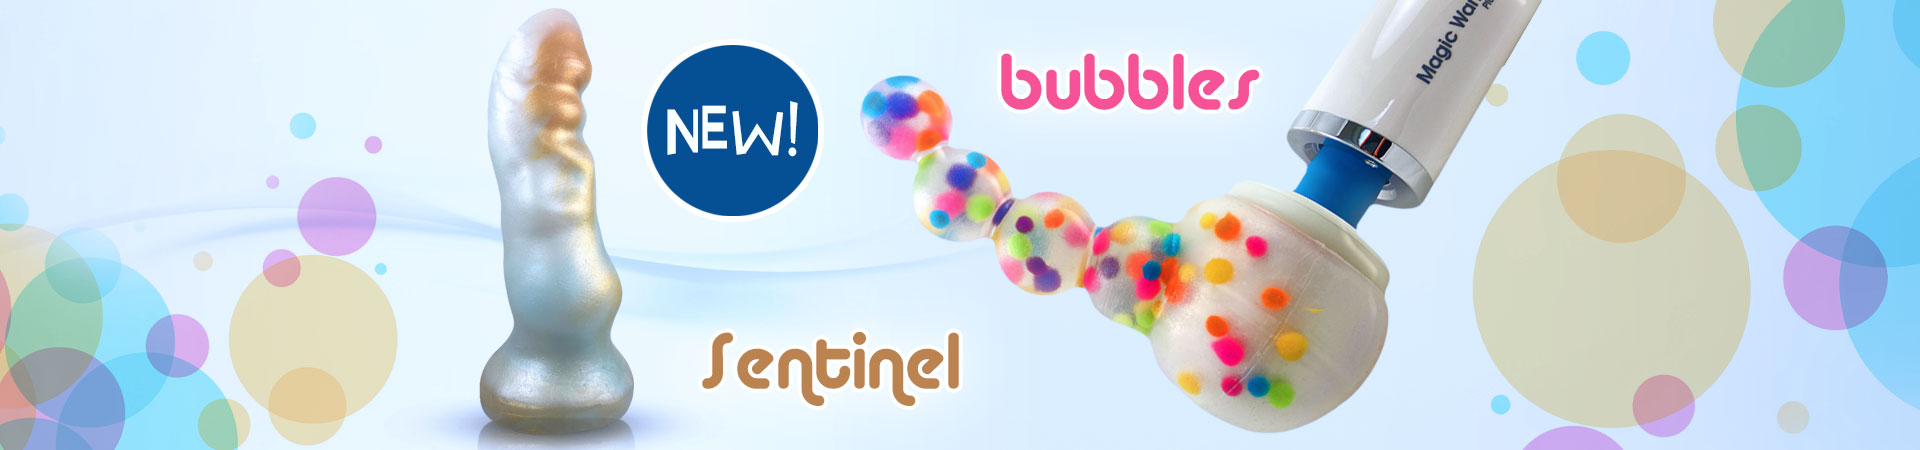 New Bubbles & Sentinel